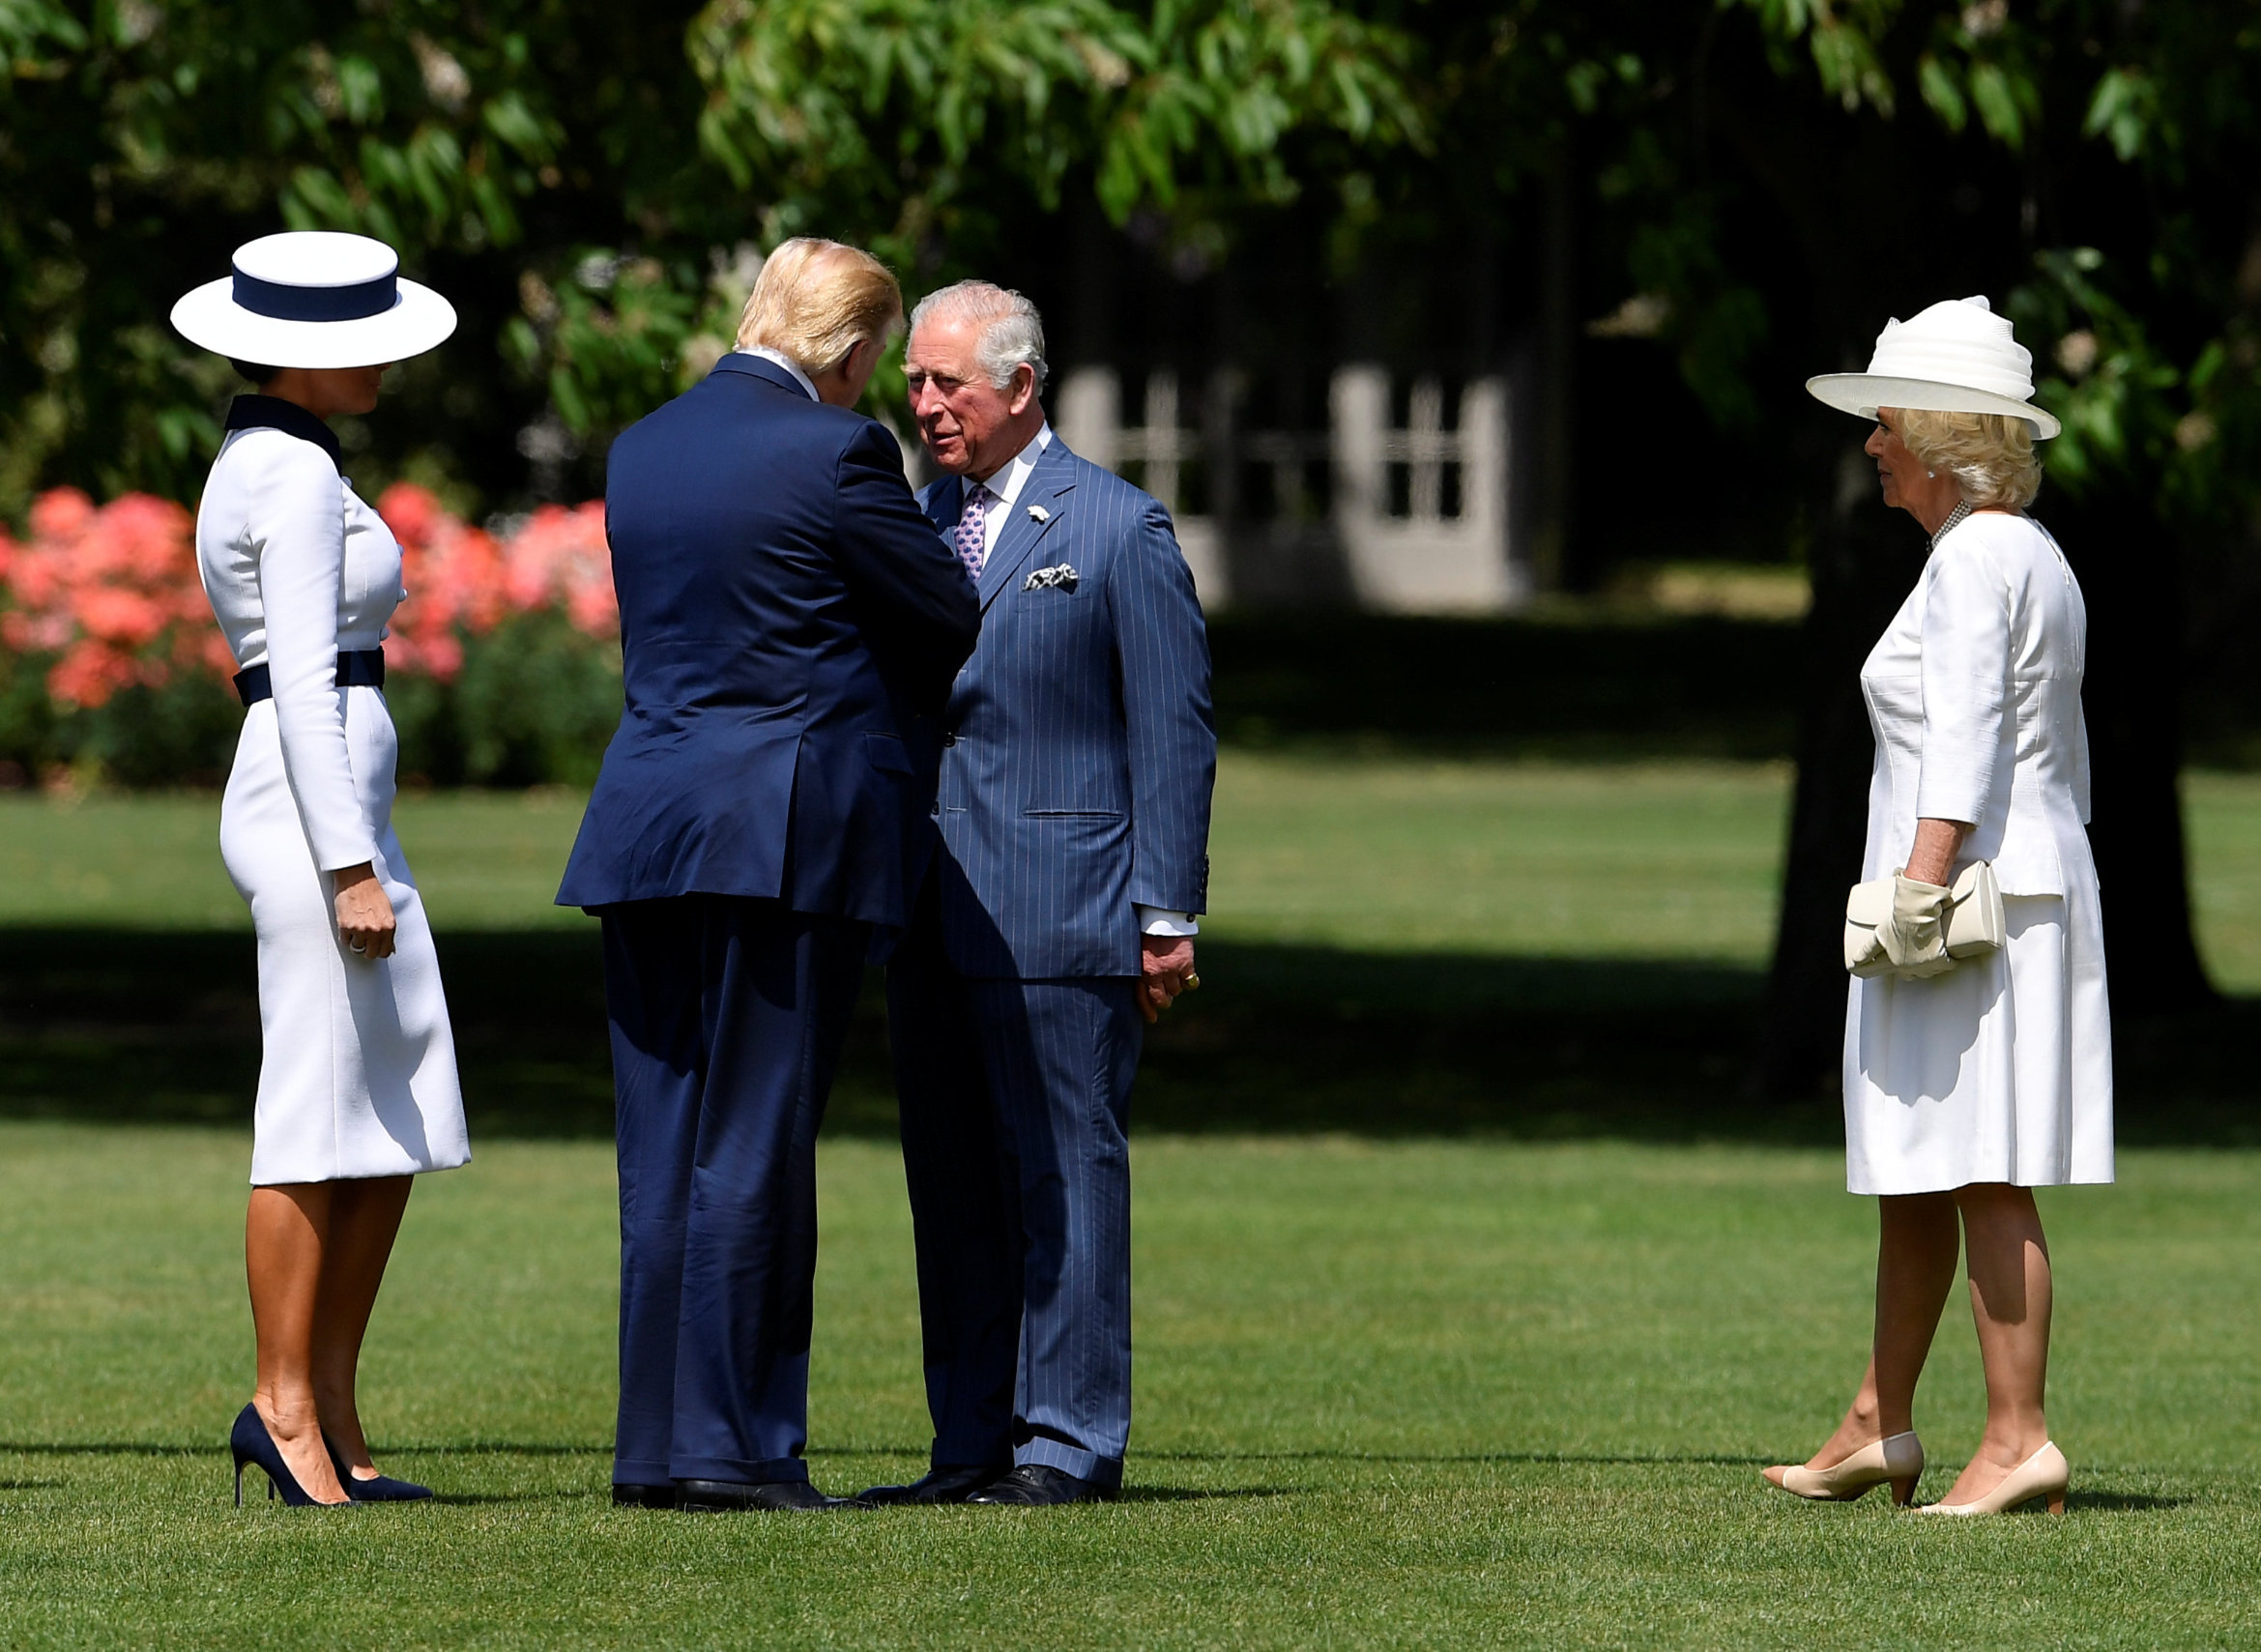 LONDON, ENGLAND - JUNE 03:  US President Donald Trump and First Lady Melania Trump are greeted by Camilla, Duchess of Cornwall and Prince Charles, Prince of Wales on June 3, 2019 in London, England. President Trump's three-day state visit will include lunch with the Queen, and a State Banquet at Buckingham Palace, as well as business meetings with the Prime Minister and the Duke of York, before travelling to Portsmouth to mark the 75th anniversary of the D-Day landings.  (Photo by Toby Melville - WPA Pool/Getty Images)